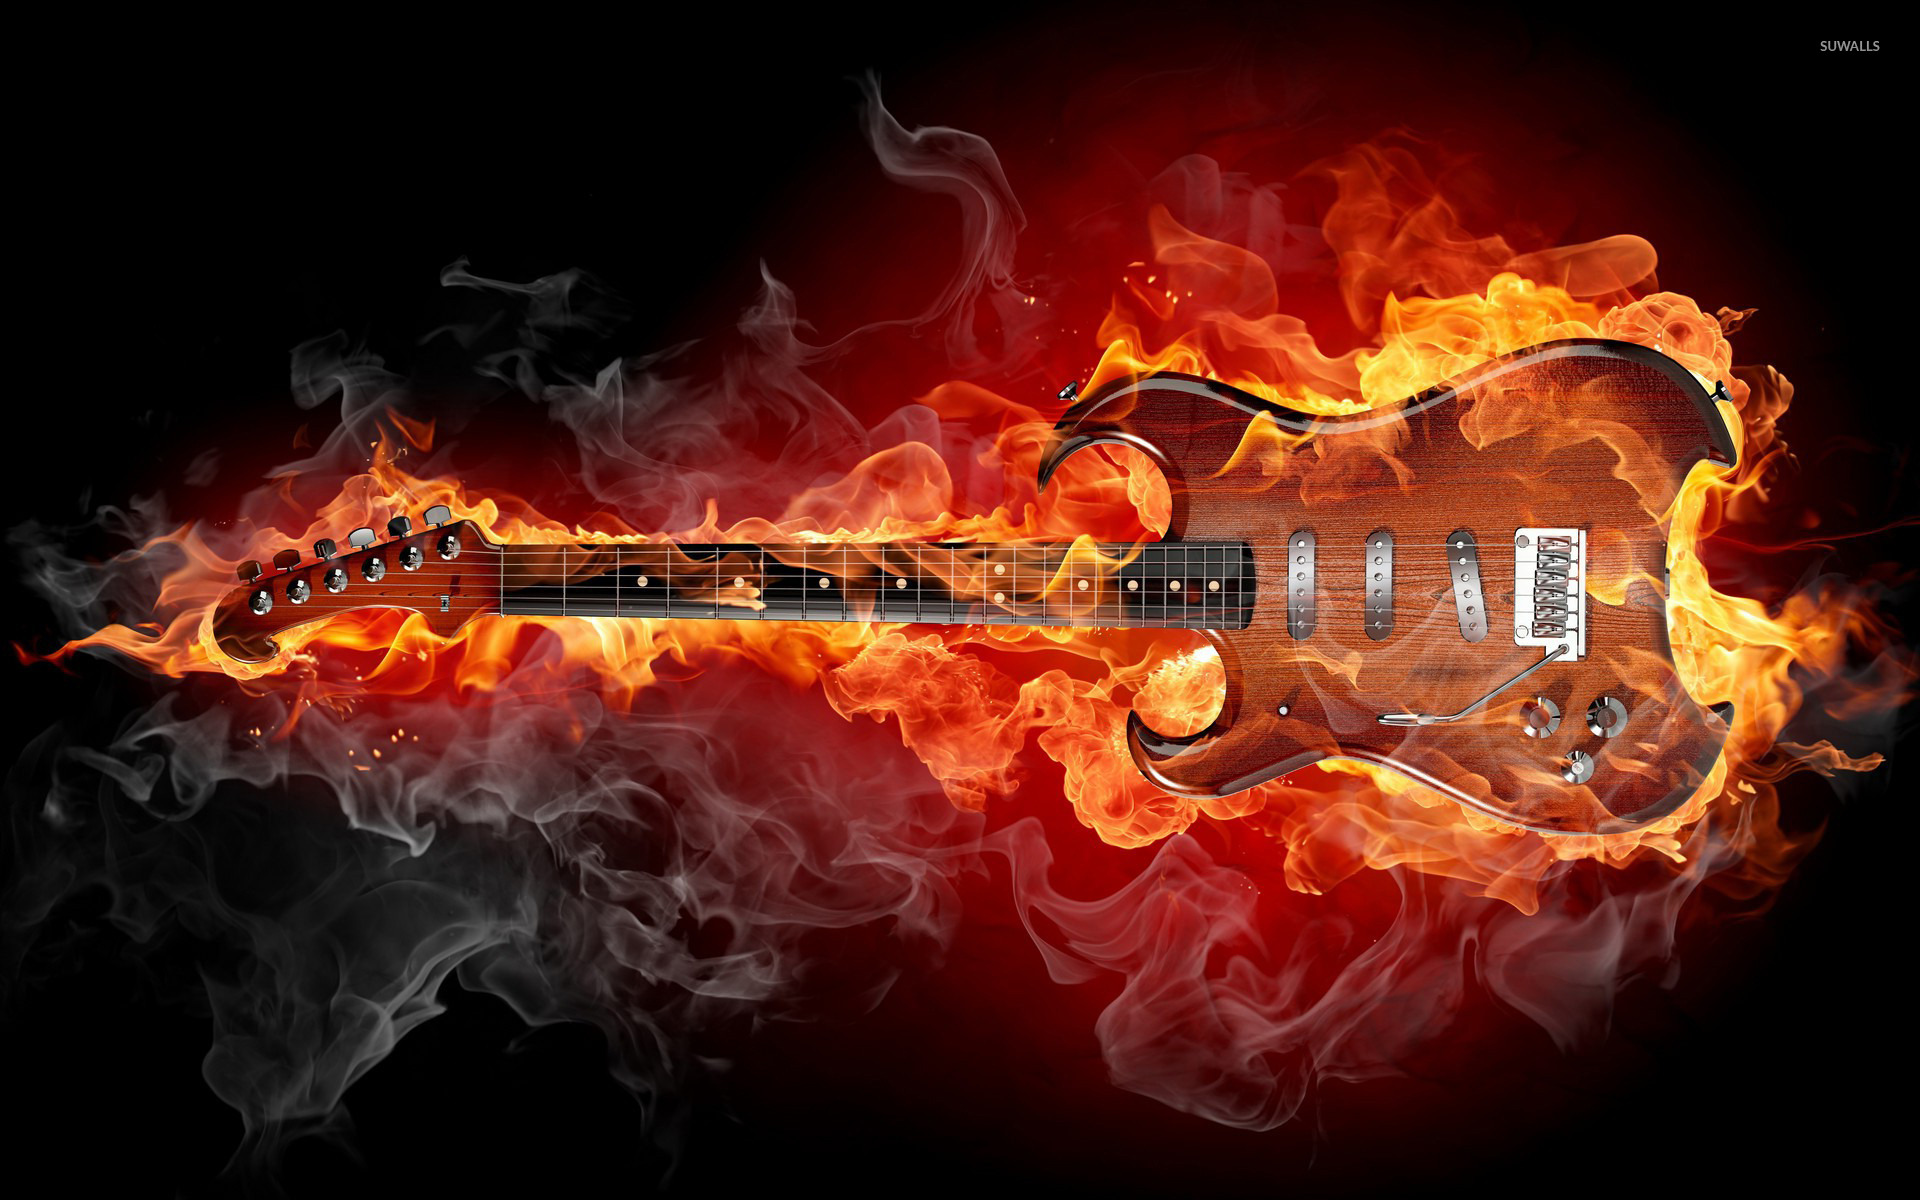 Flaming guitar wallpaper Music wallpapers 20494